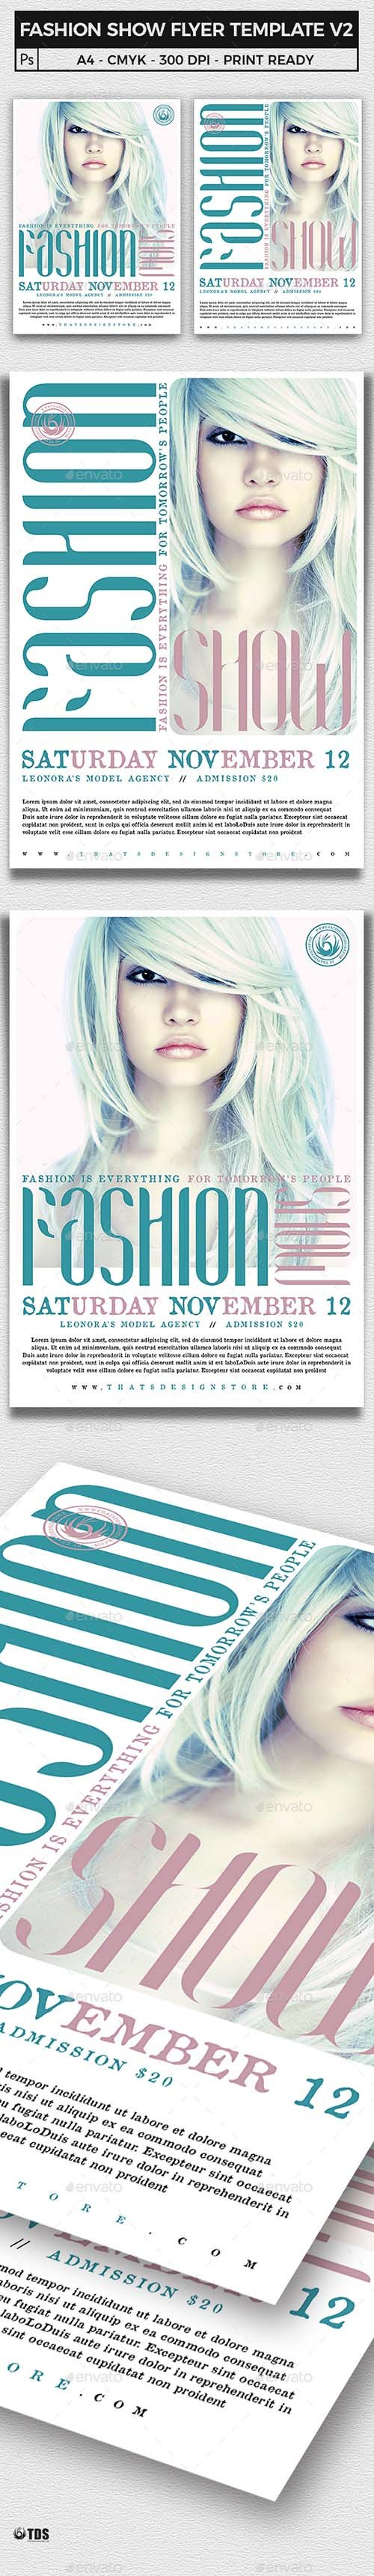 fashion show flyer template v2 15801140 nitrogfx download unique graphics for creative designers. Black Bedroom Furniture Sets. Home Design Ideas